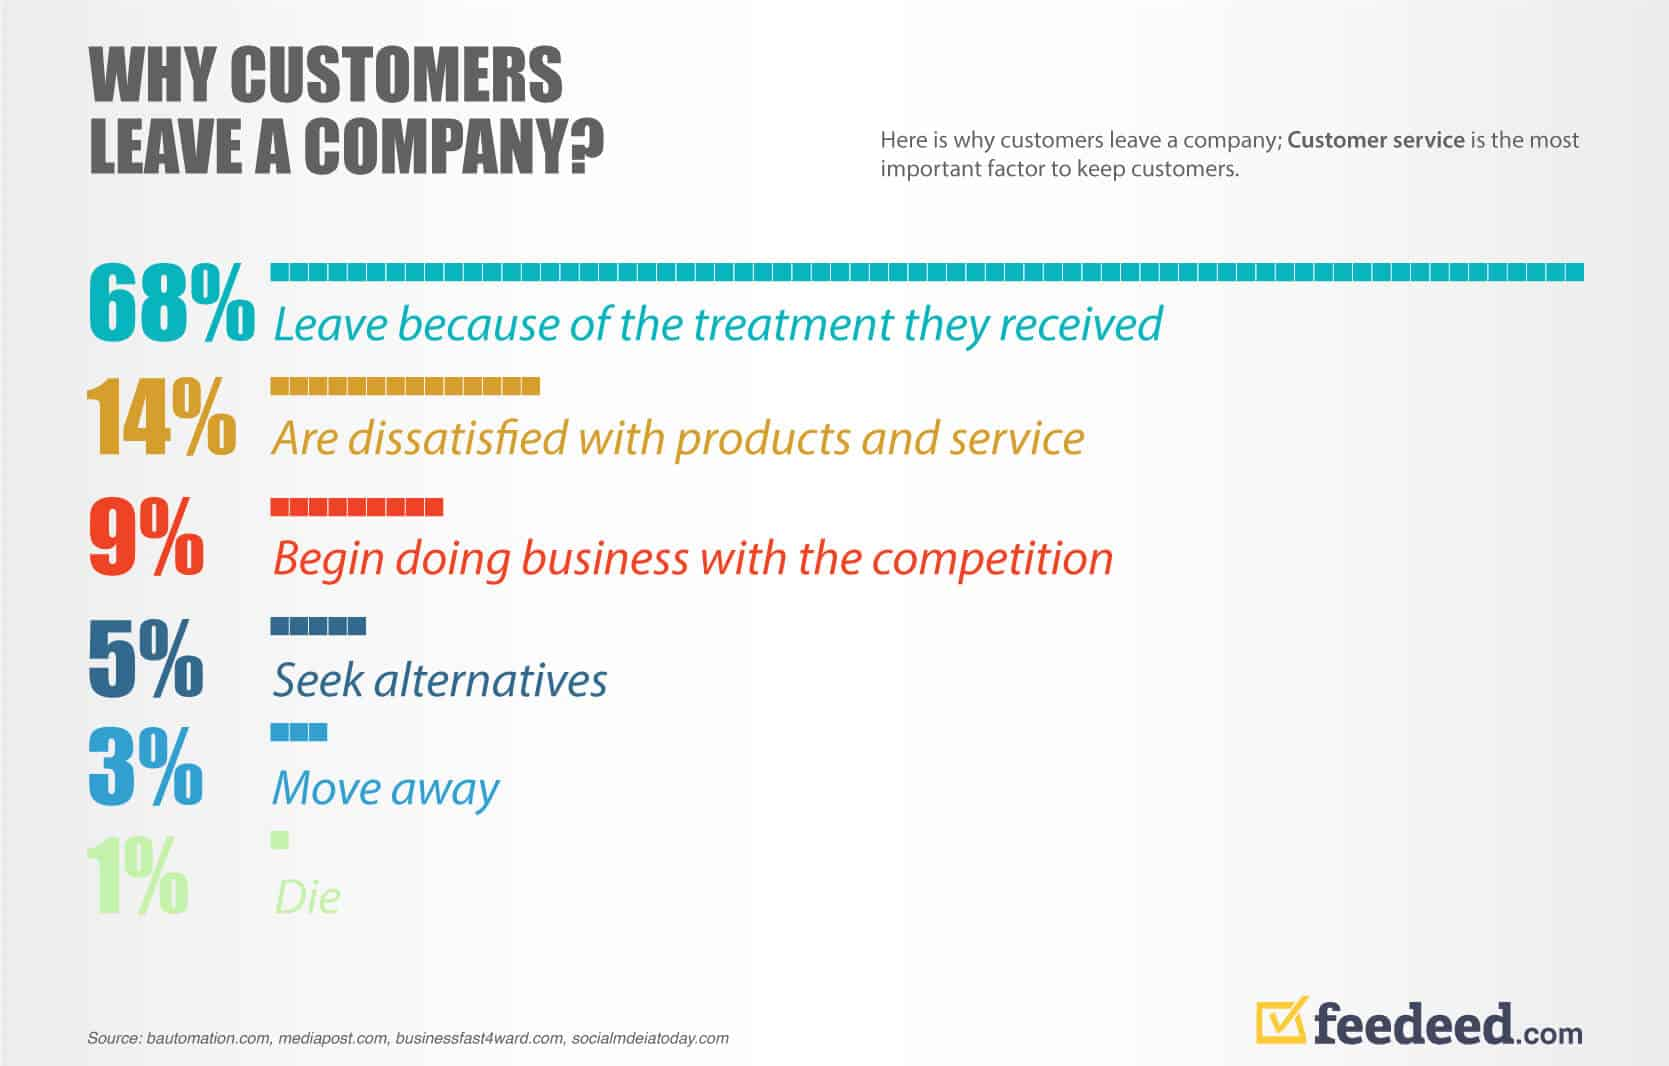 Why Customers Leave